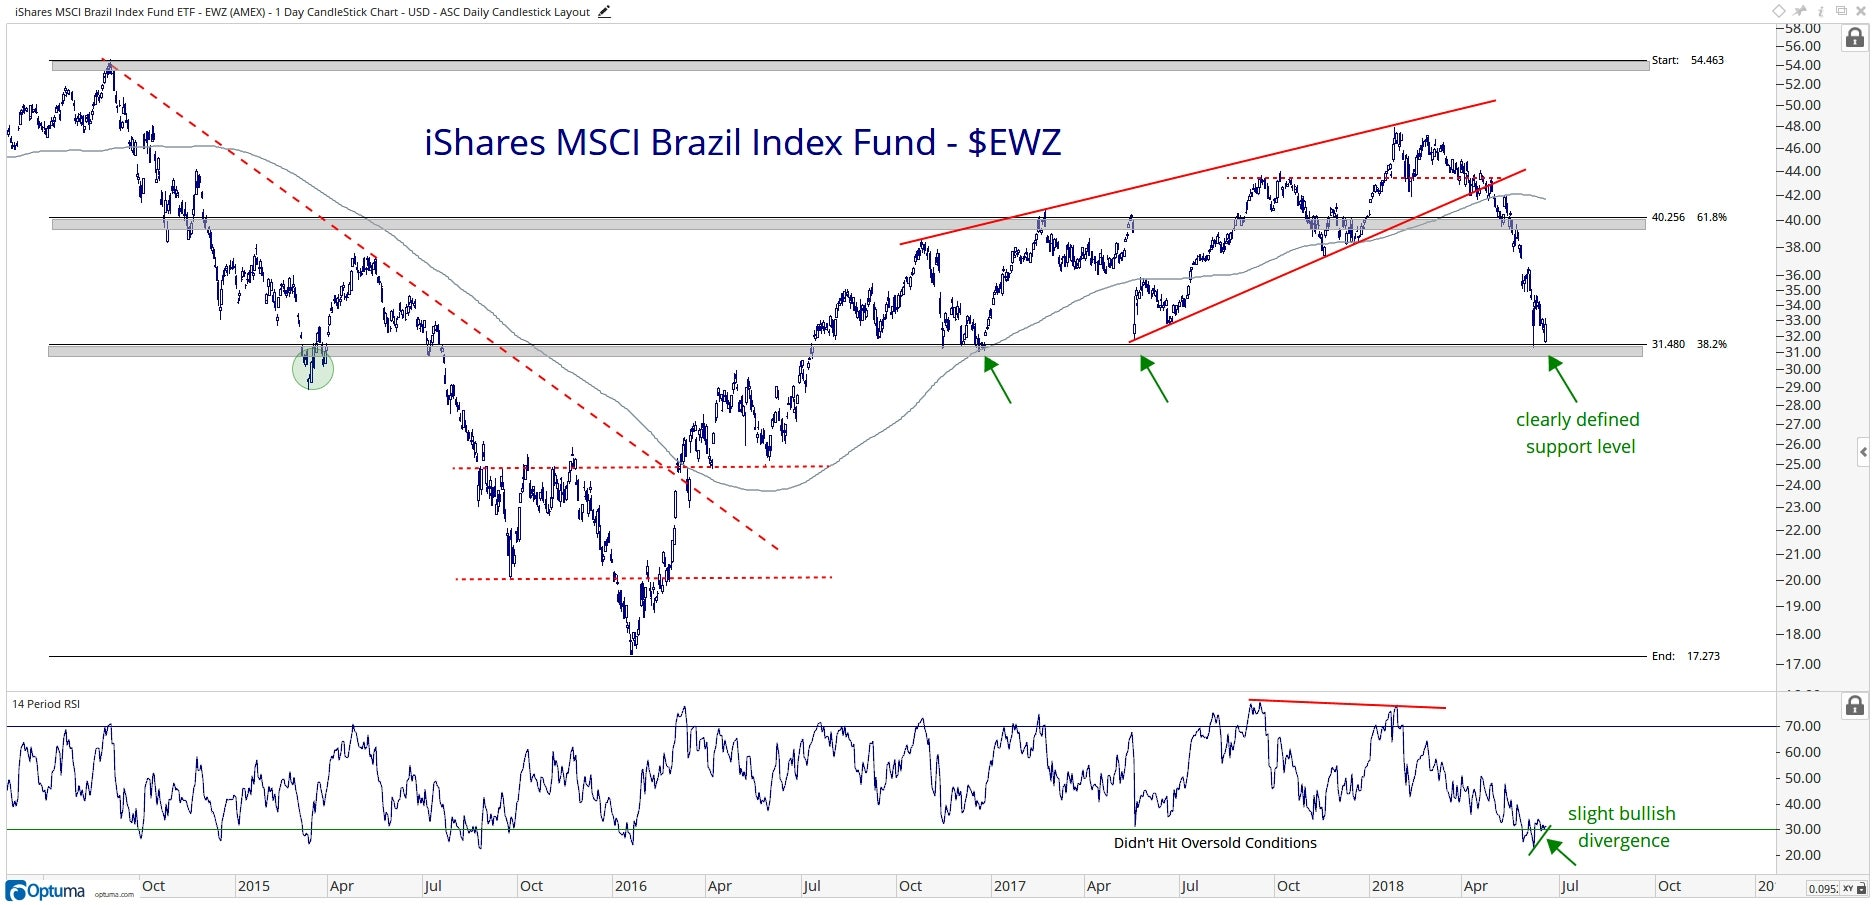 Technical chart showing the performance of the iShares MSCI Brazil Index Fund ETF (EWZ)